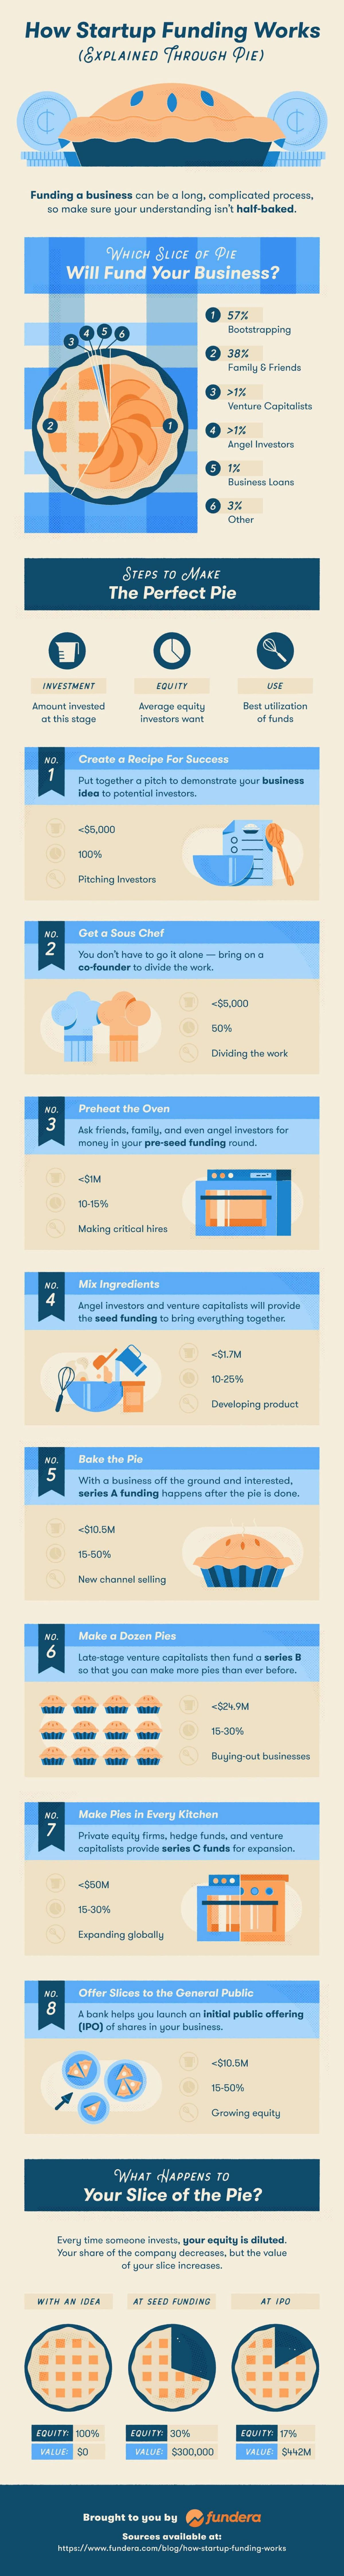 Visualizing The Stages Of Startup Funding About 1500 New Companies Are Founded Every Day However Only A Fra Startup Funding Start Up Investing Infographic